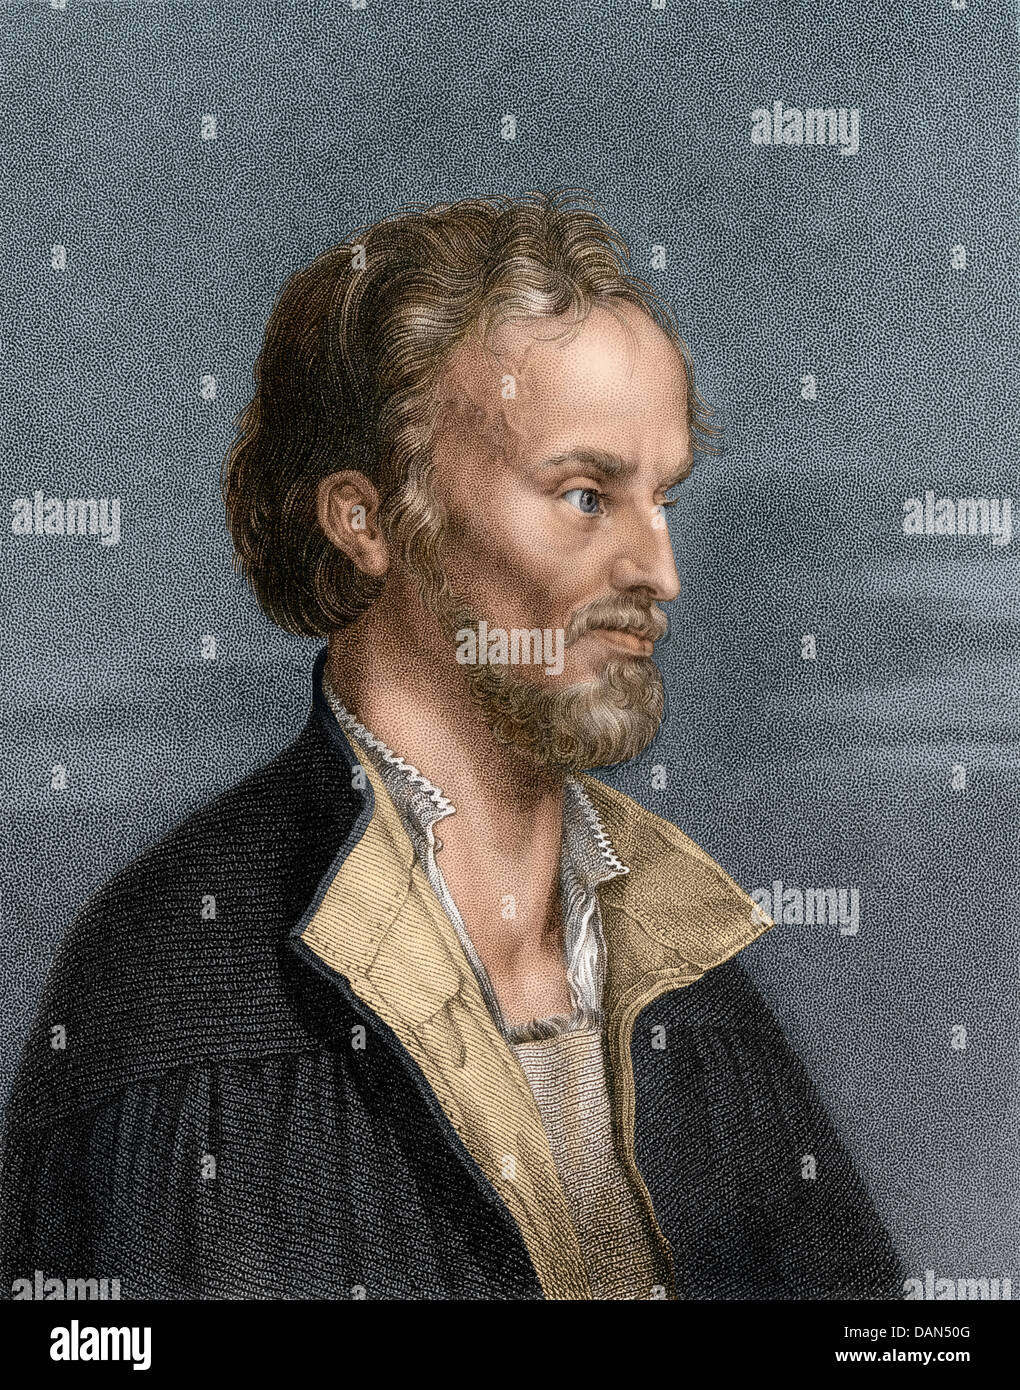 Philip Melanchthon, German religious reformer and scholar. Digitally colored engraving Stock Photo